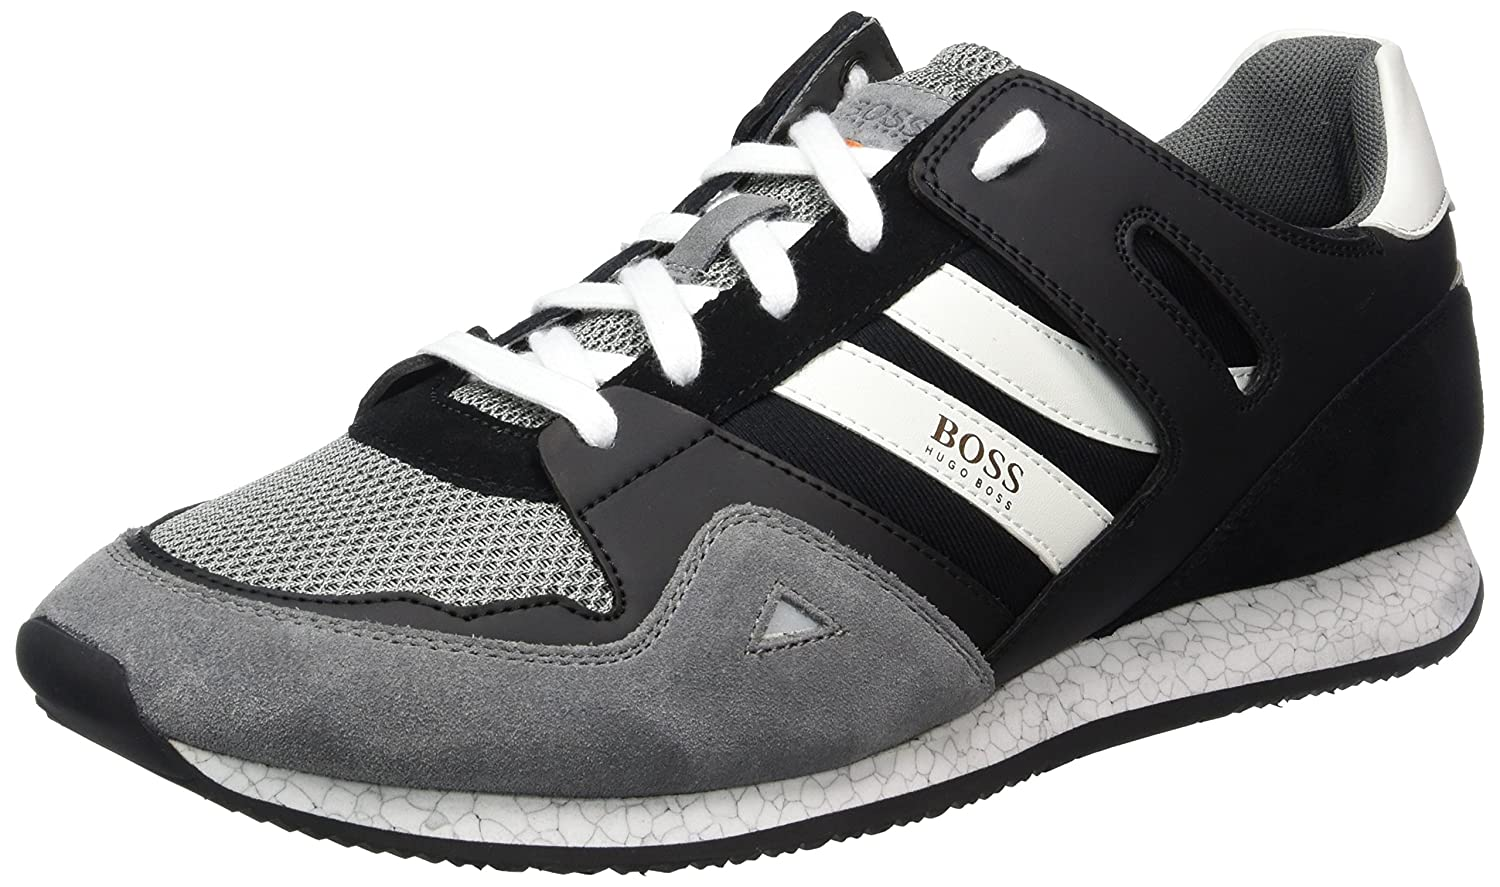 Mens Adrenal_Runn_mx 10197240 01 Low-Top Sneakers Boss Orange by Hugo Boss GGreSgEM